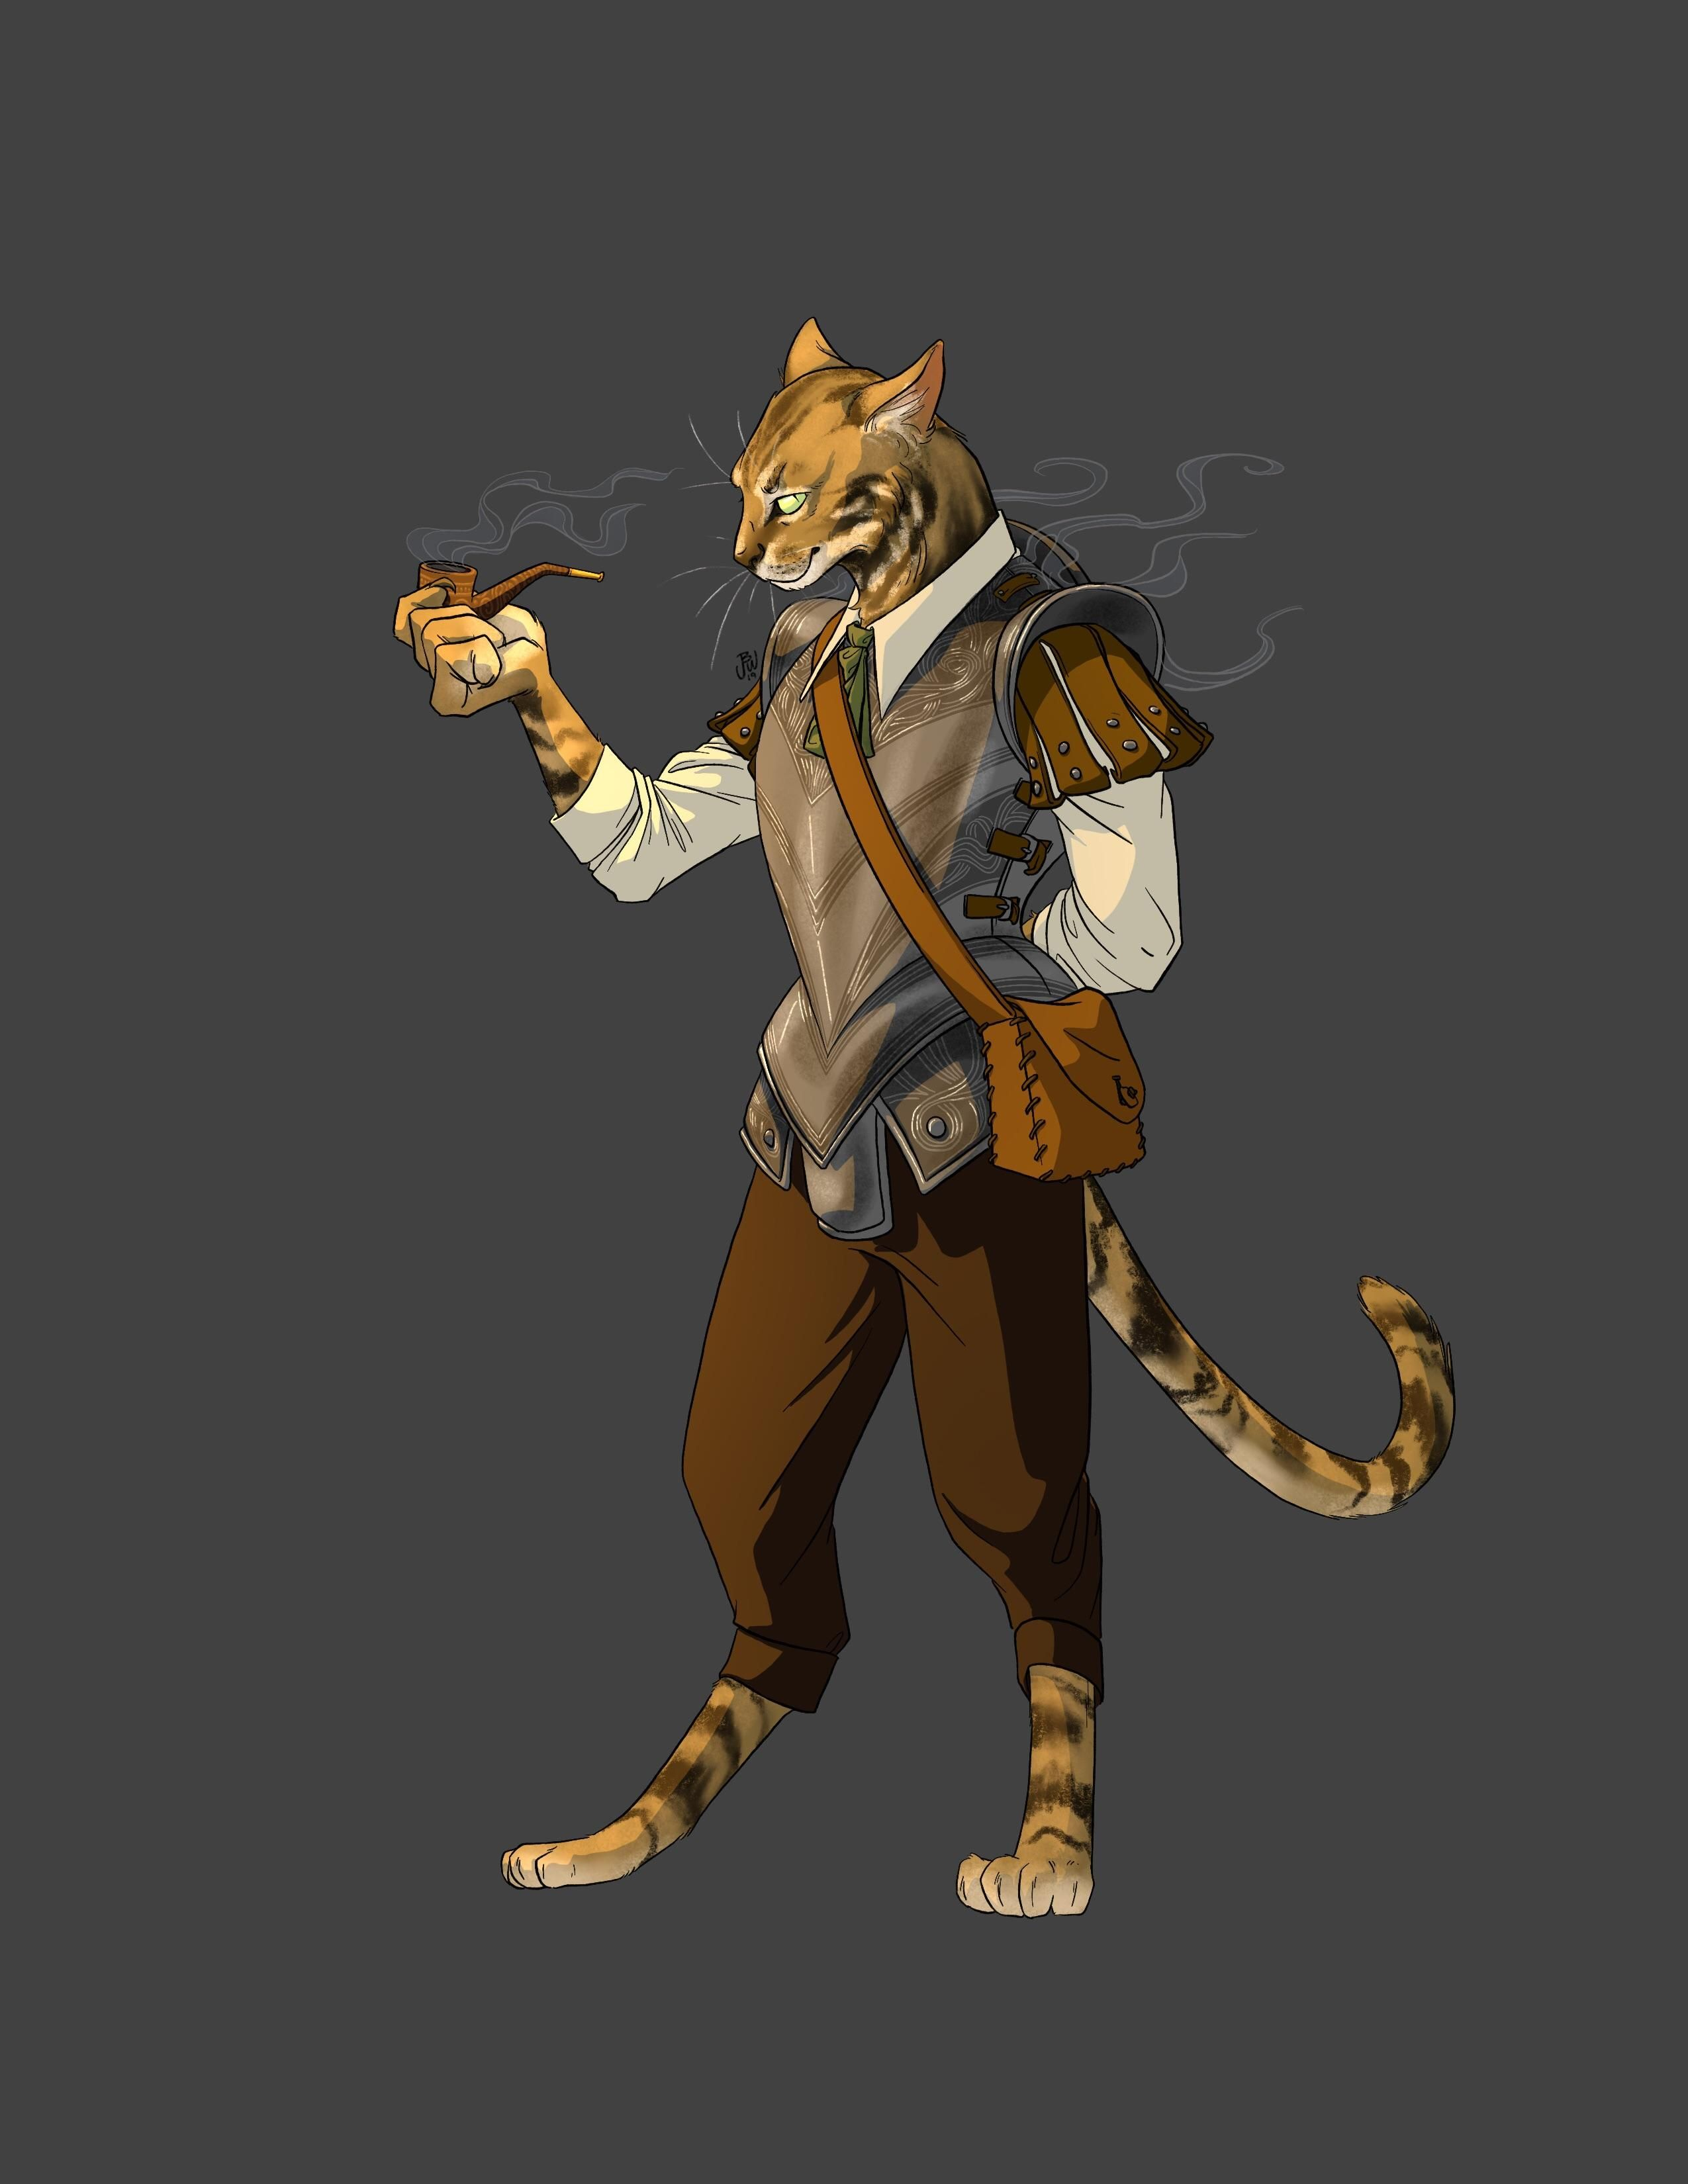 200 Npcs Ideas Character Portraits Fantasy Characters Rpg Character Check out inspiring examples of tabaxi_monk artwork on deviantart, and get inspired by our community of talented artists. character portraits fantasy characters